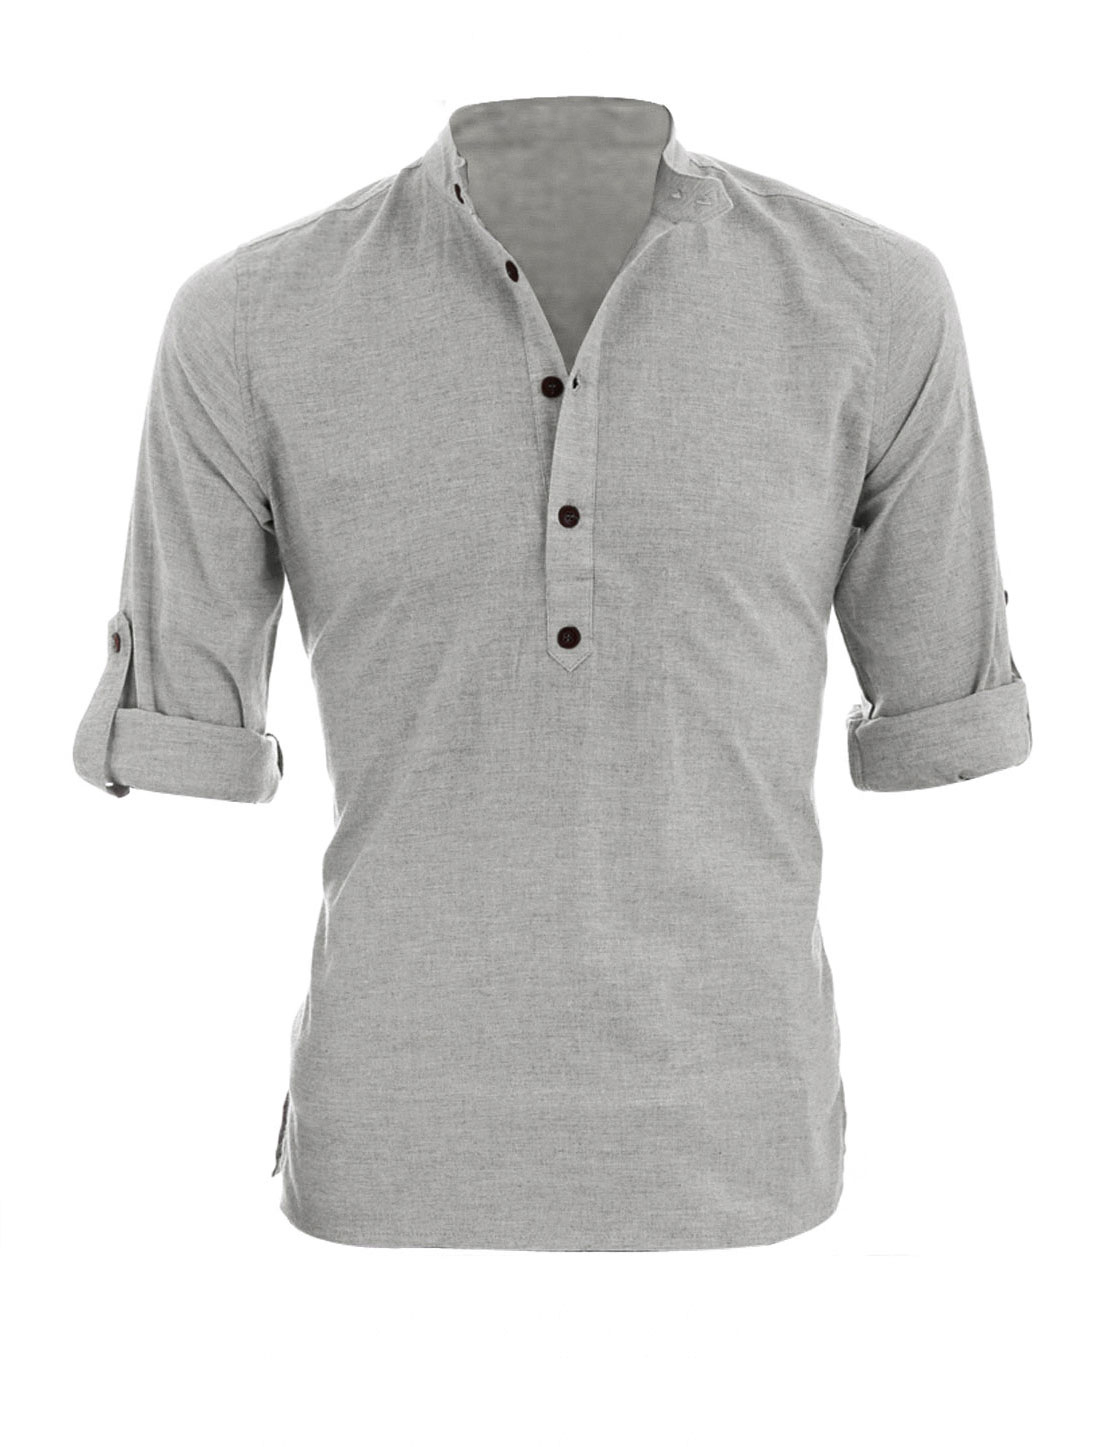 Men Button Cuffs Long Sleeves Heathered Henley Shirt Light Gray S